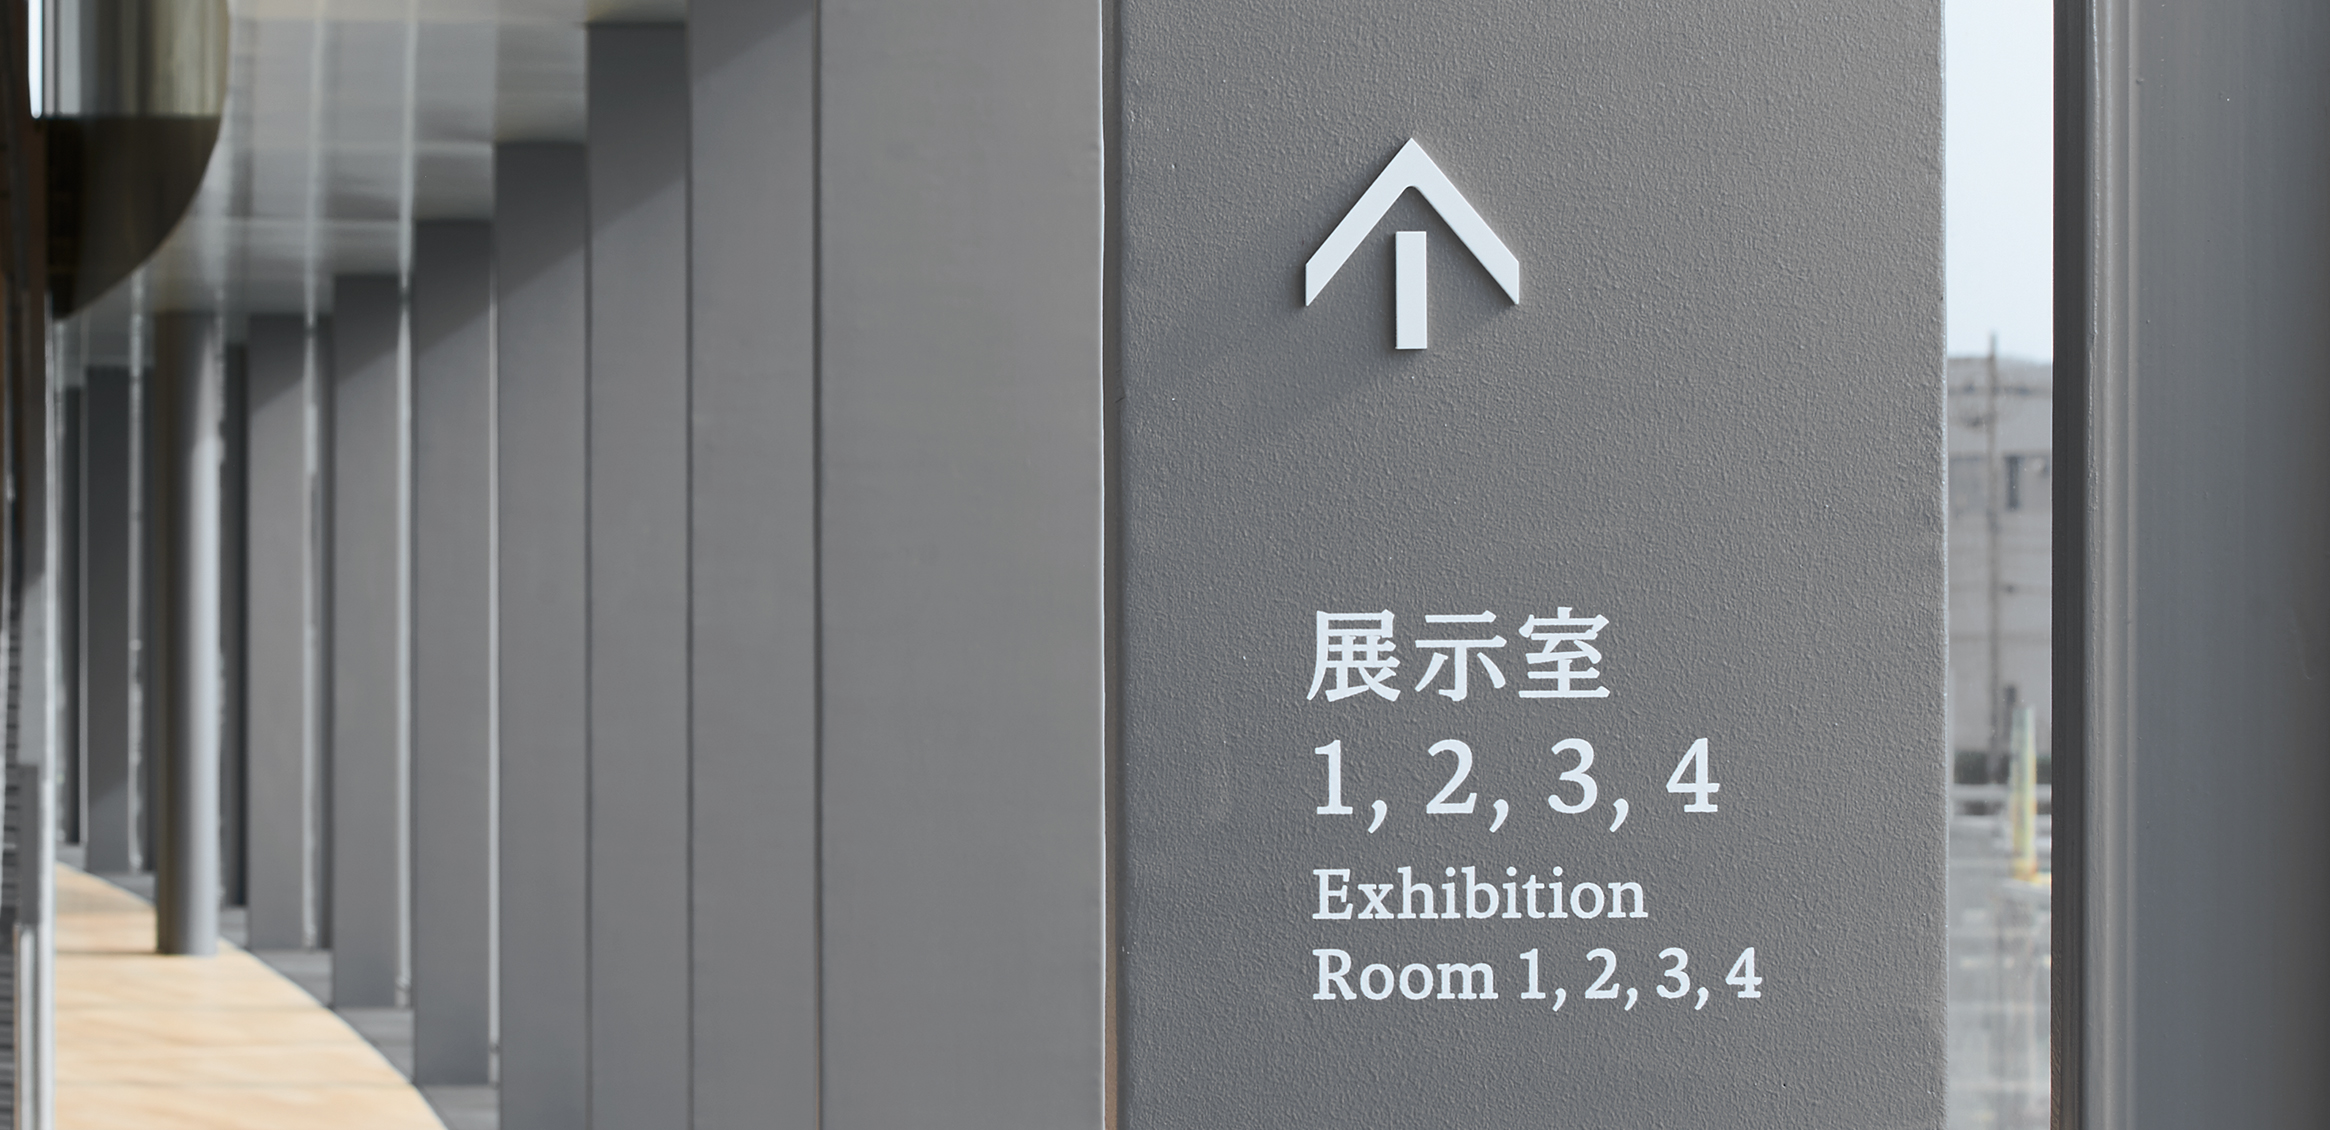 Toyama Prefectural Museum of Art and Design VI Signage Planning6枚目